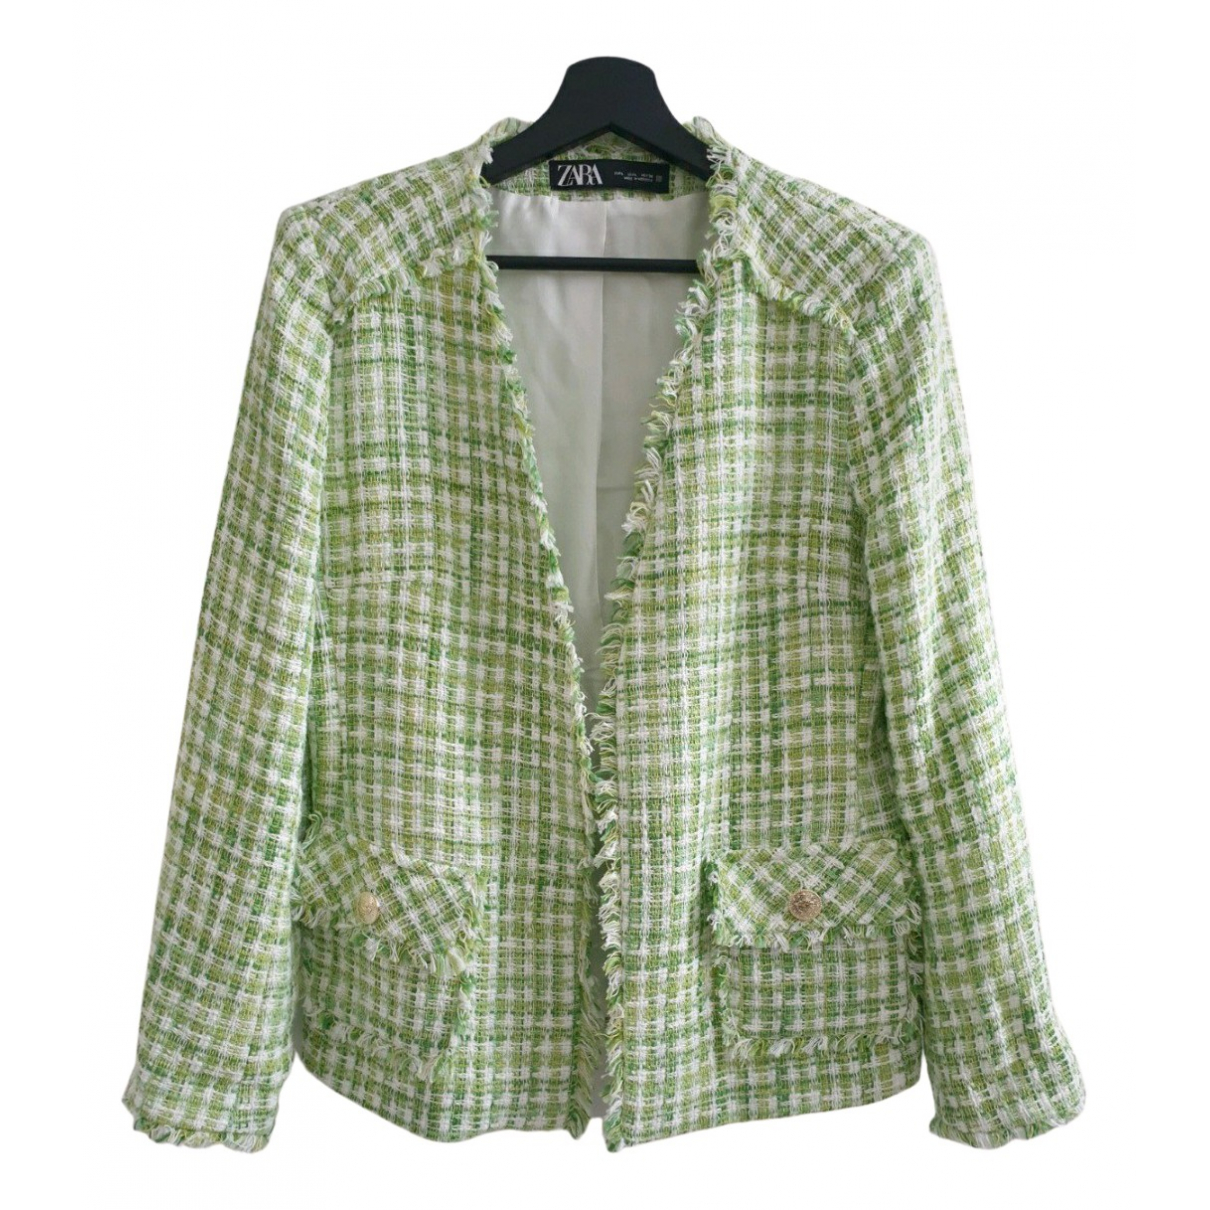 Zara \N Green Cotton jacket for Women 40 FR